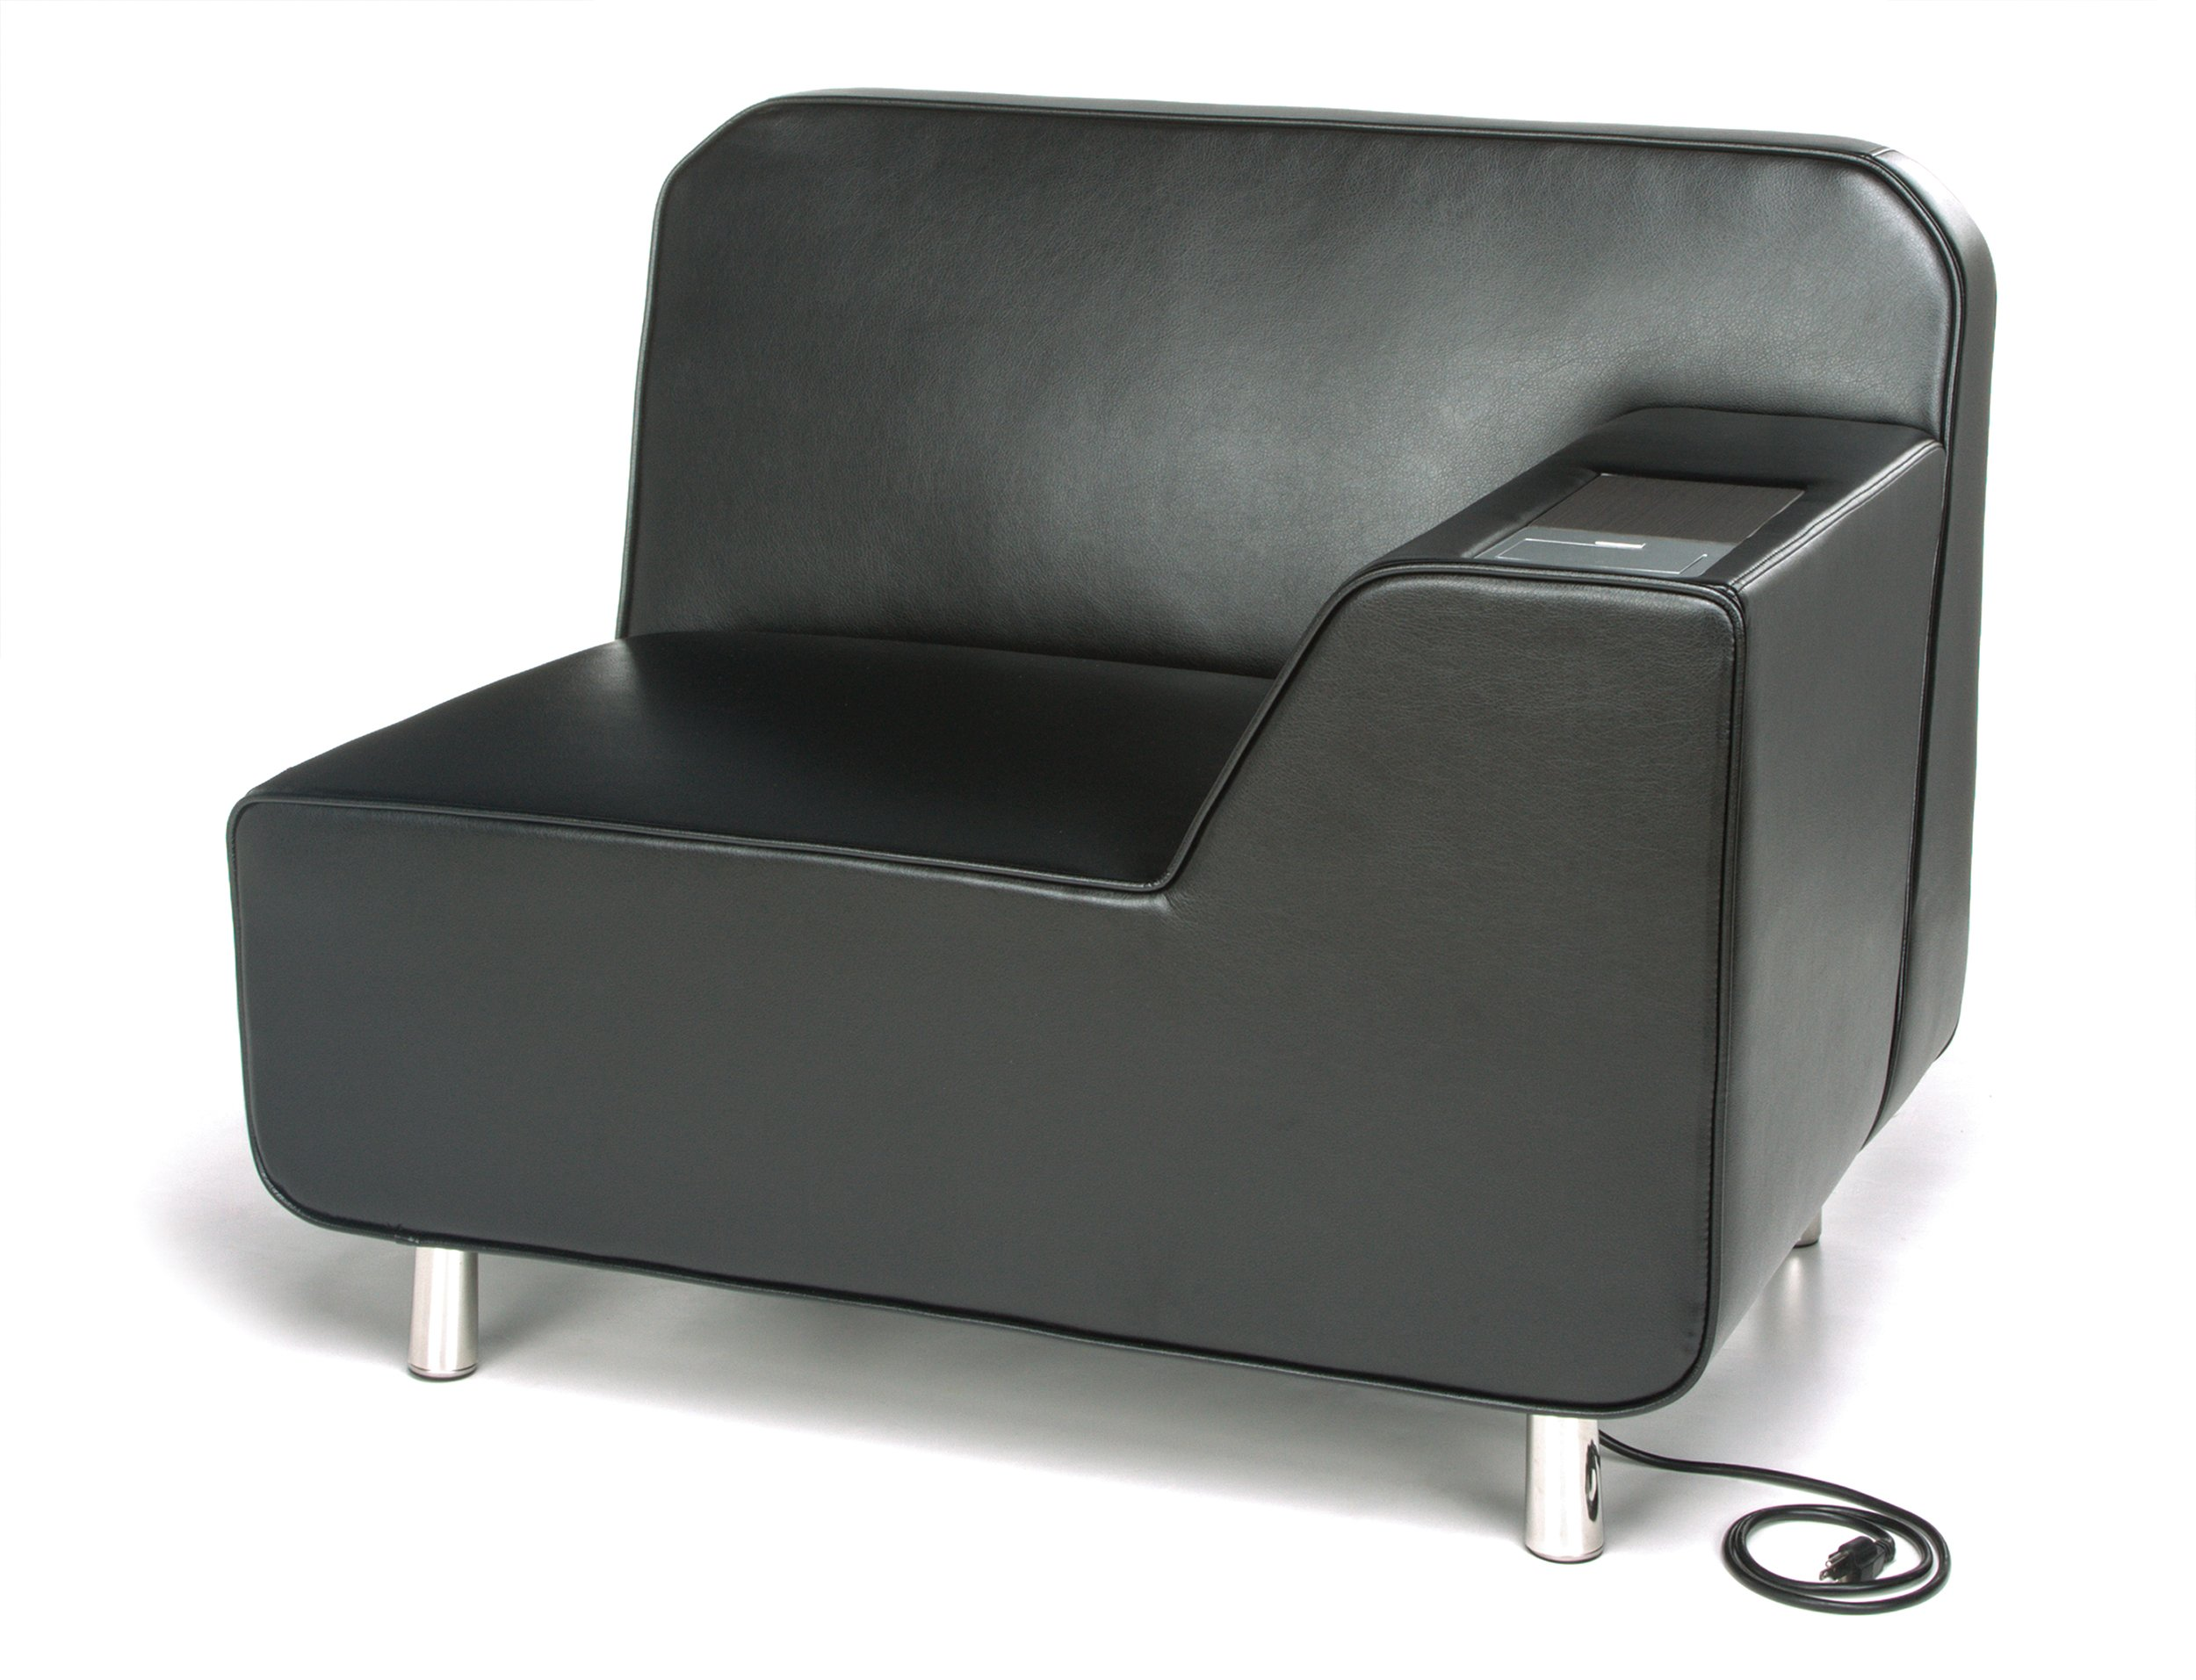 OFM 5000LE-BLK-TG Serenity Series Left Arm Lounge Chair with Electrical Outlet, Tungsten Tablet, Black